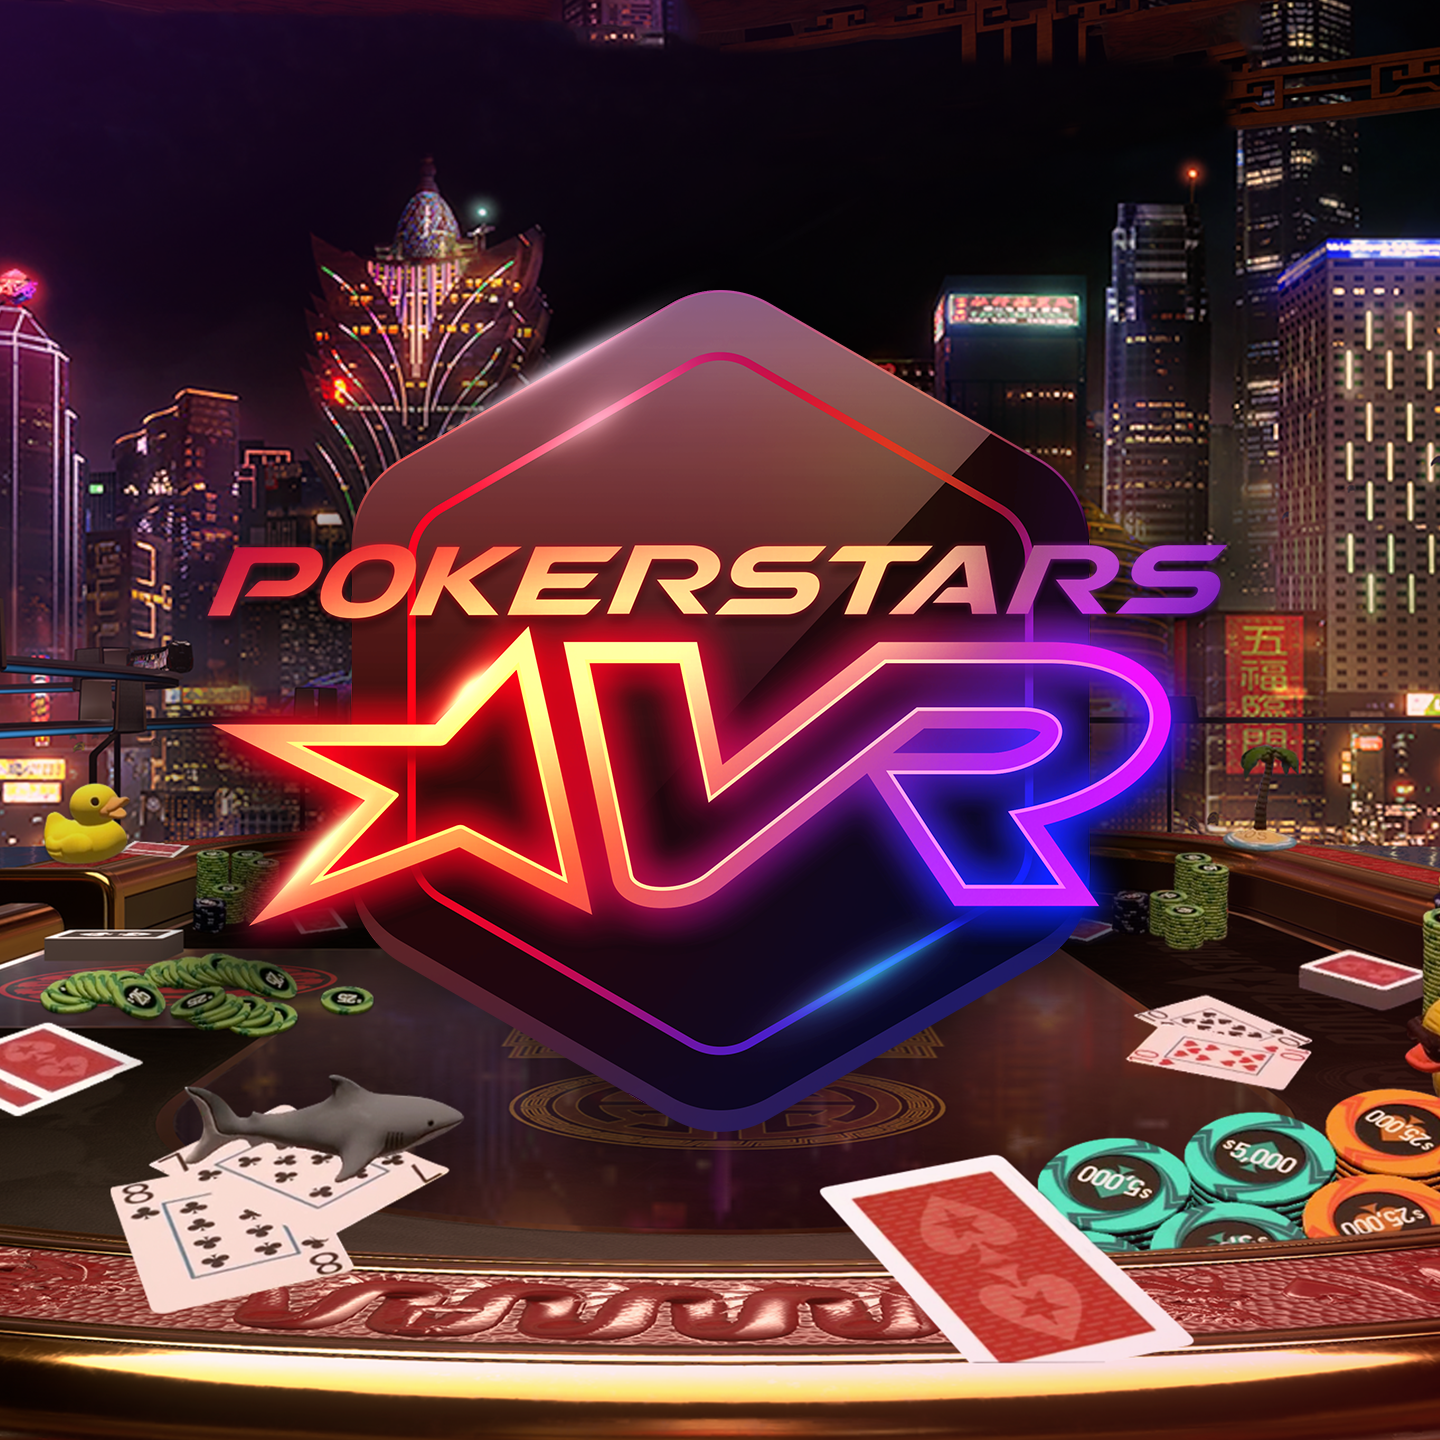 PokerStars VR Creates Live Poker Feel in Virtual Reality